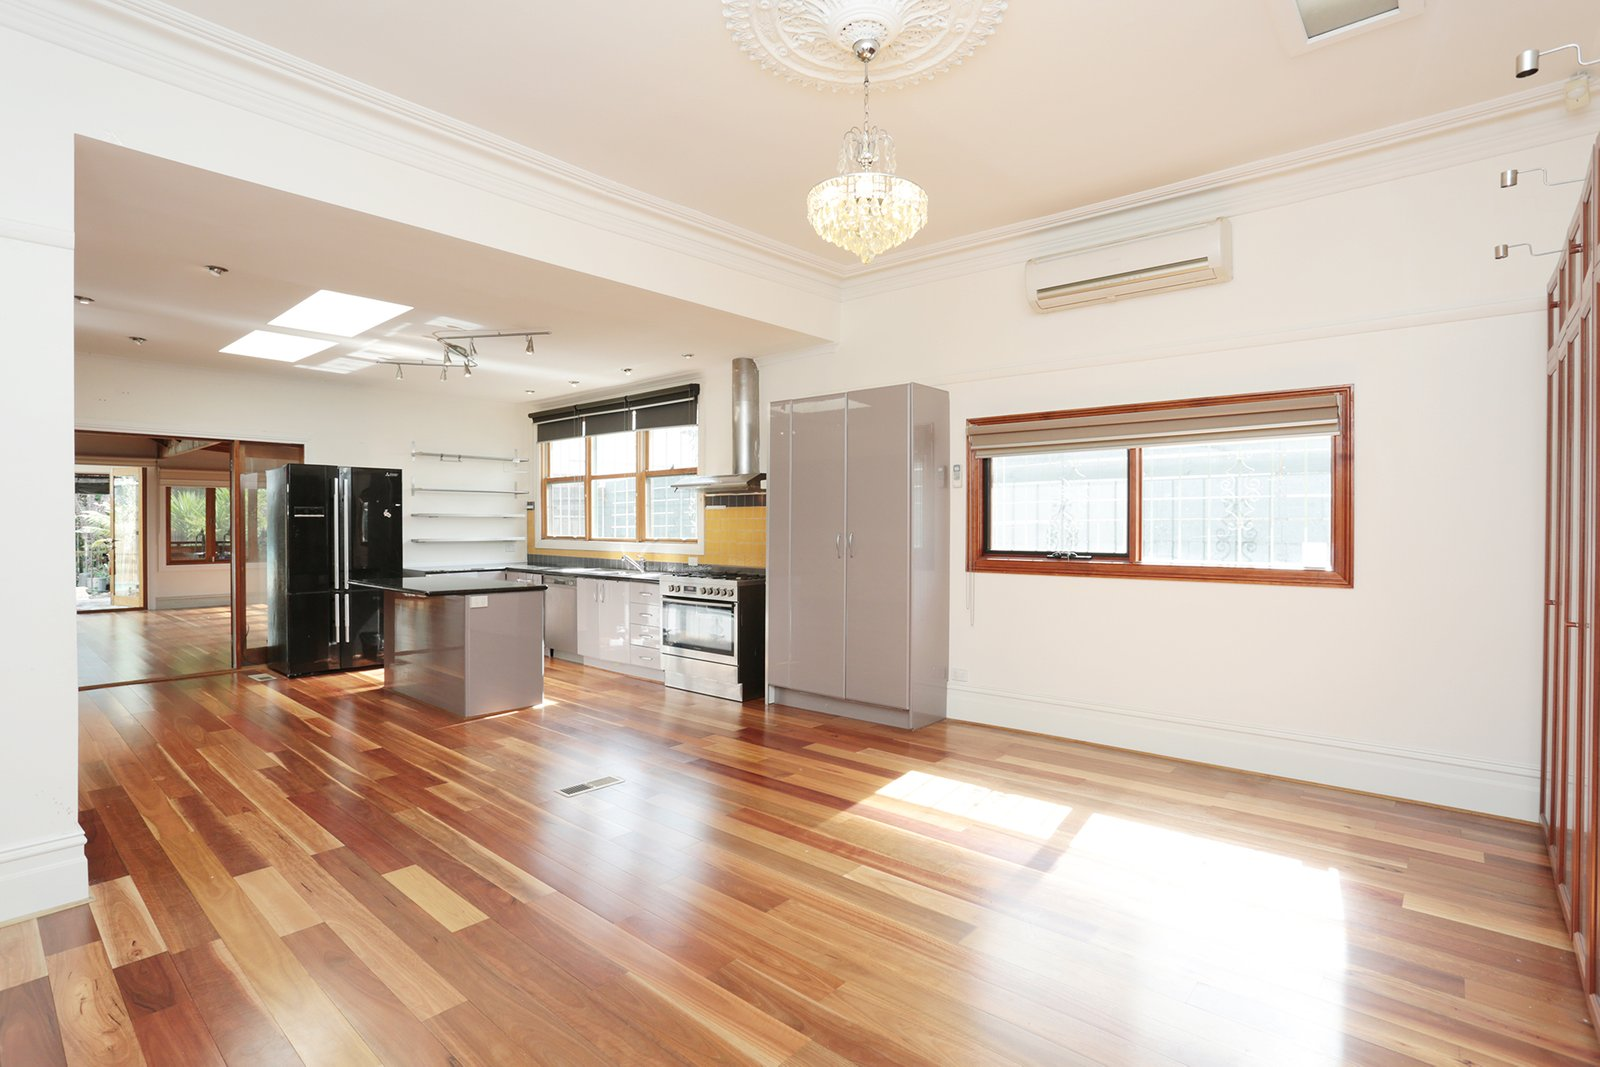 209 Ascot Vale Road, Ascot Vale, VIC, 3032 image 2